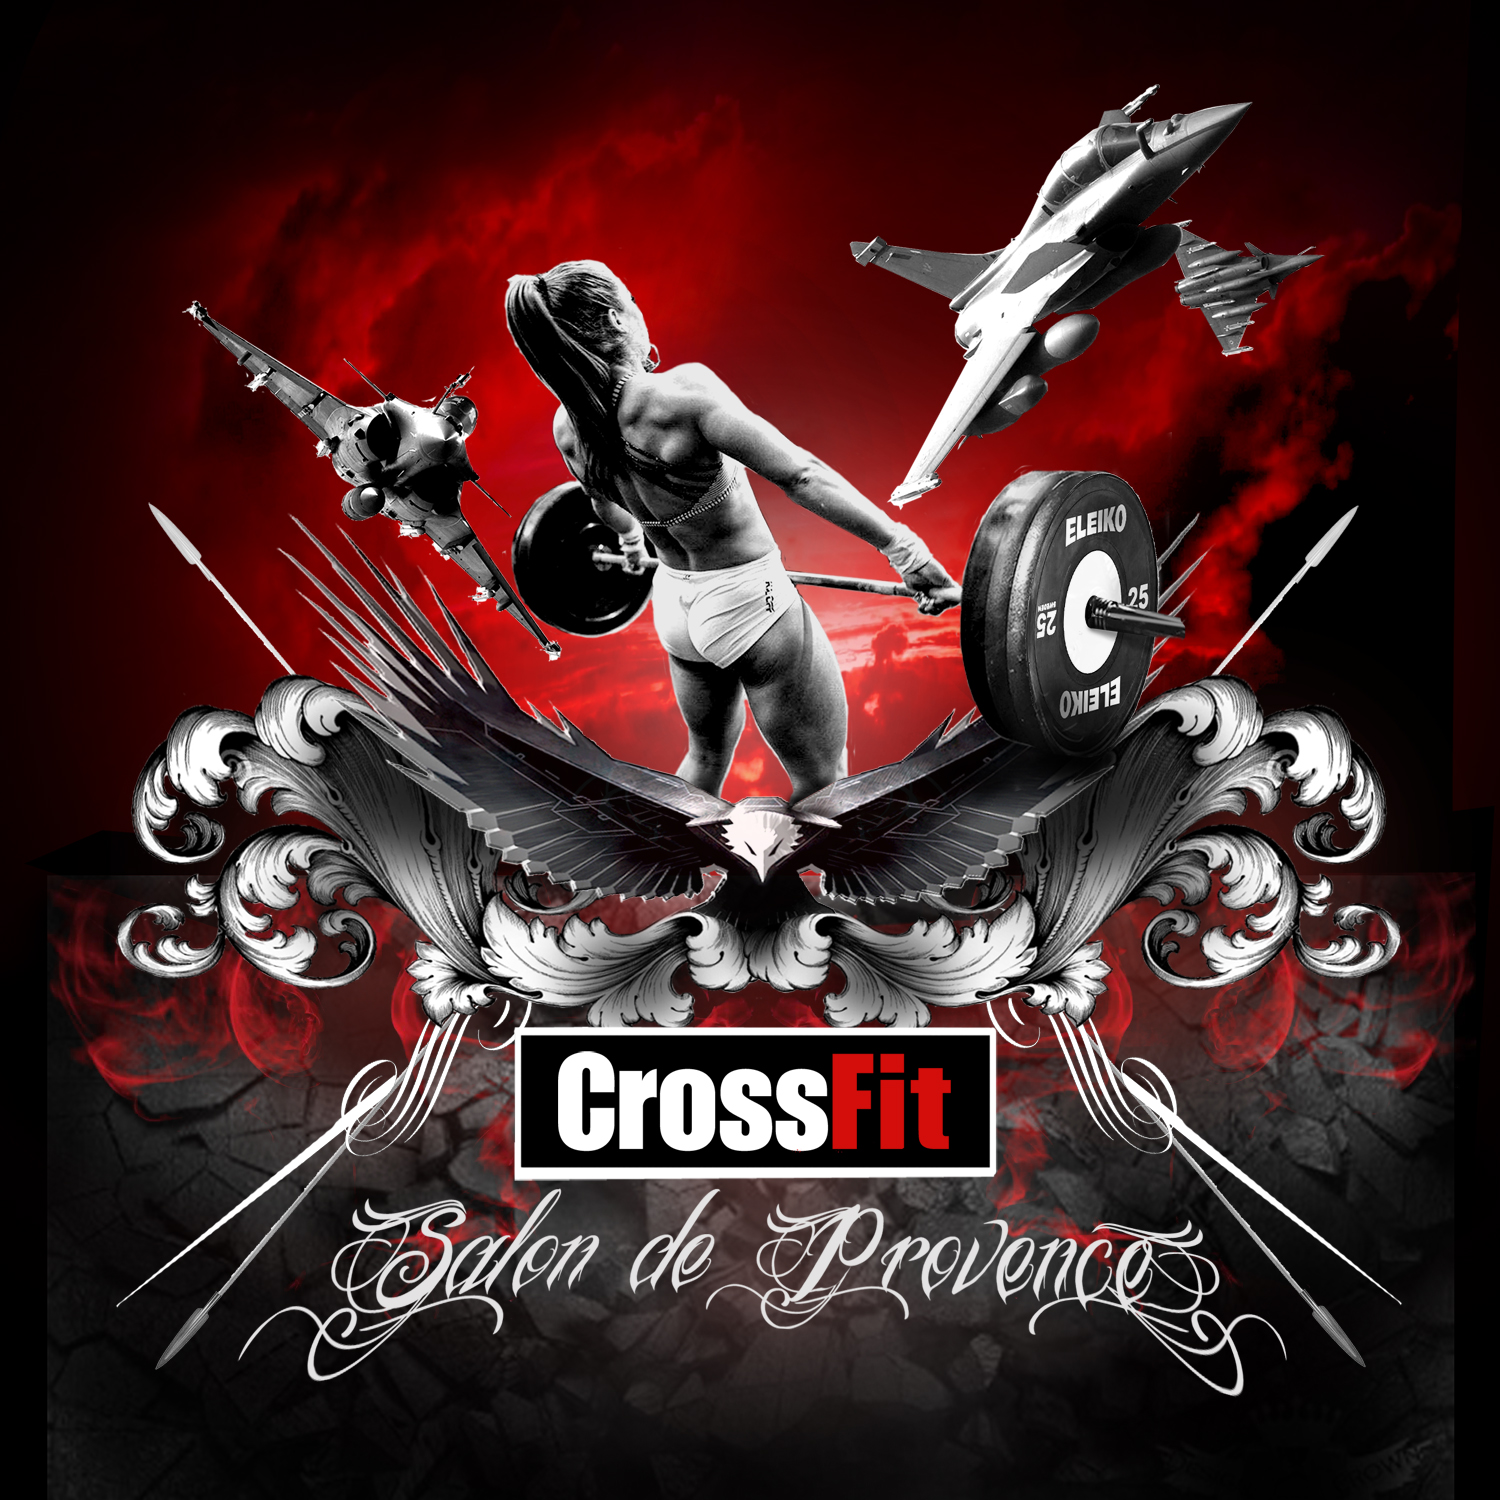 crossfit salon de provence la french co 6 boxs de crossfit ForCrossfit Salon De Provence